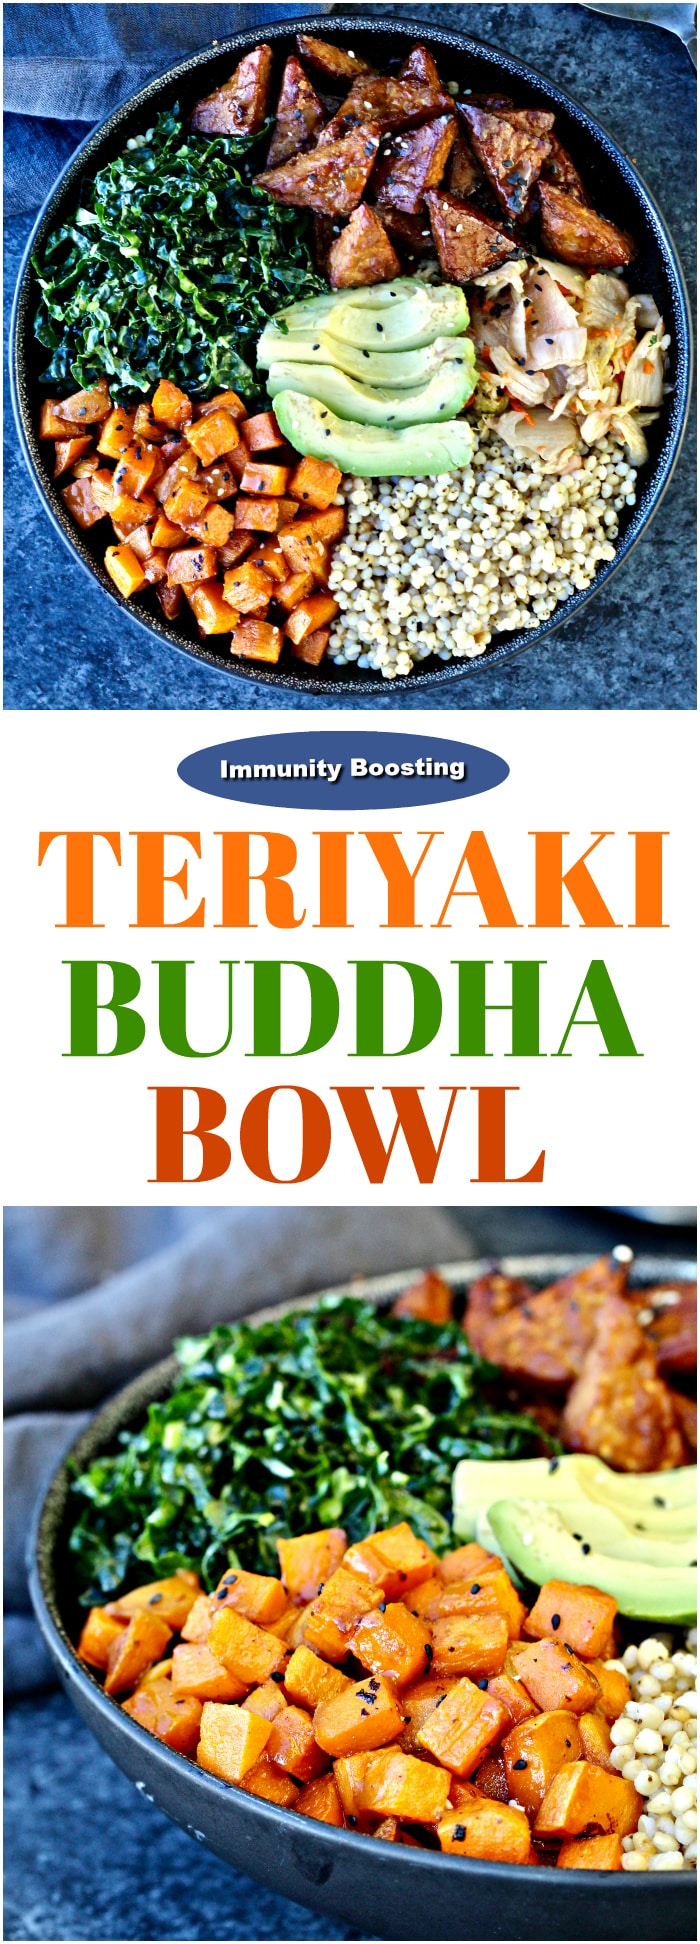 One-bowl meals are the perfect way to elevate game night! My Immunity-BoostingTeriyaki Buddha Bowl made with @KikkomanUSA Teriyaki Marinade & Sauce is a colorful, umami-packed way to give your immune system a boost! Share your own favorite #bowlingnight pics! #sponsored